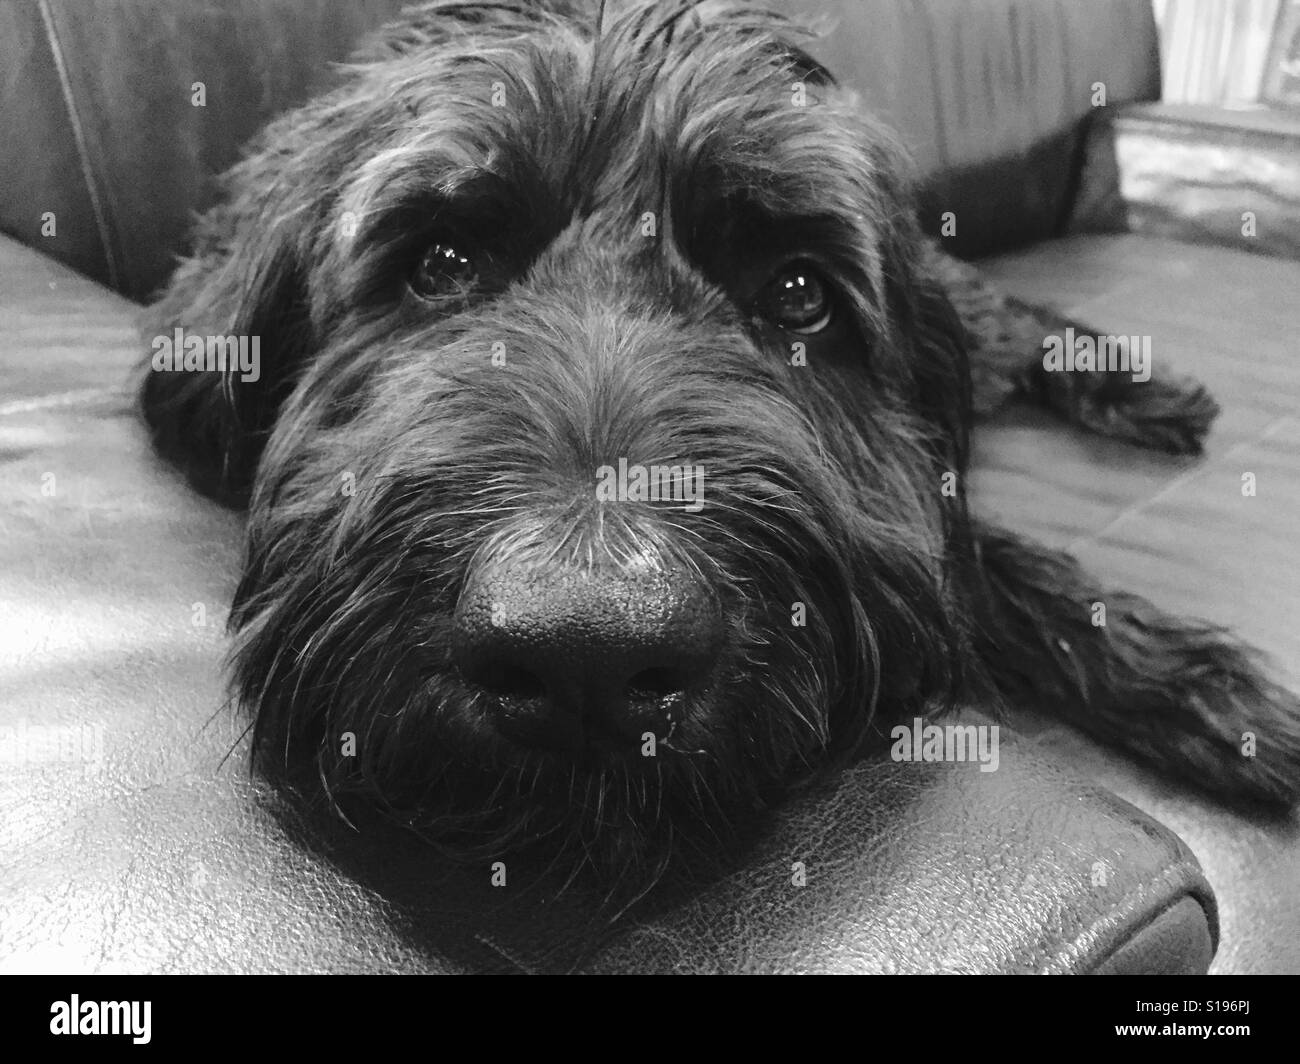 A black labradoodle dog laying on a couch. - Stock Image